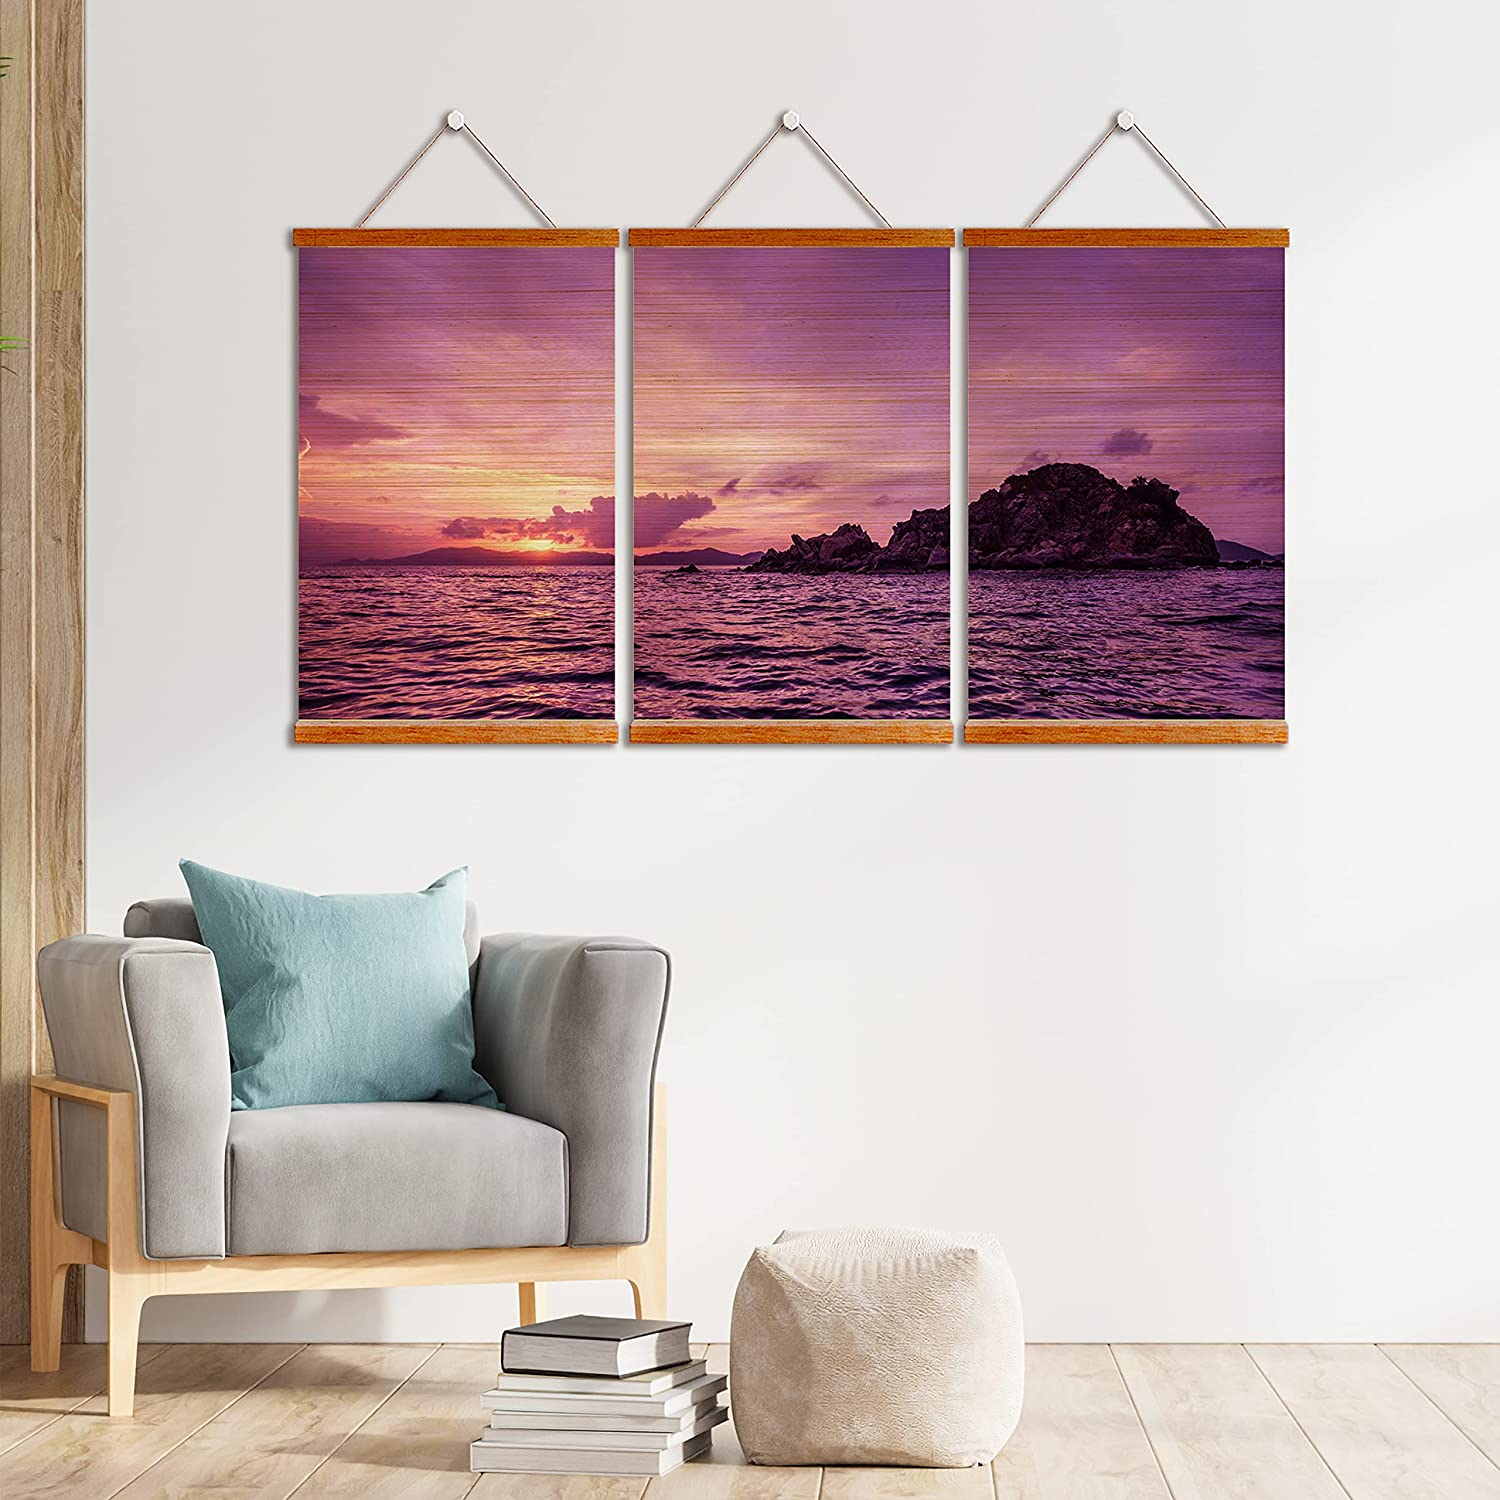 Pelican Island Sunset 3 Panel Wall Art Bamboo Scroll for Decor | Bamboo Blinds Printing, Wooden Framed | Natural Eco-frendly Artwork Home Decoration